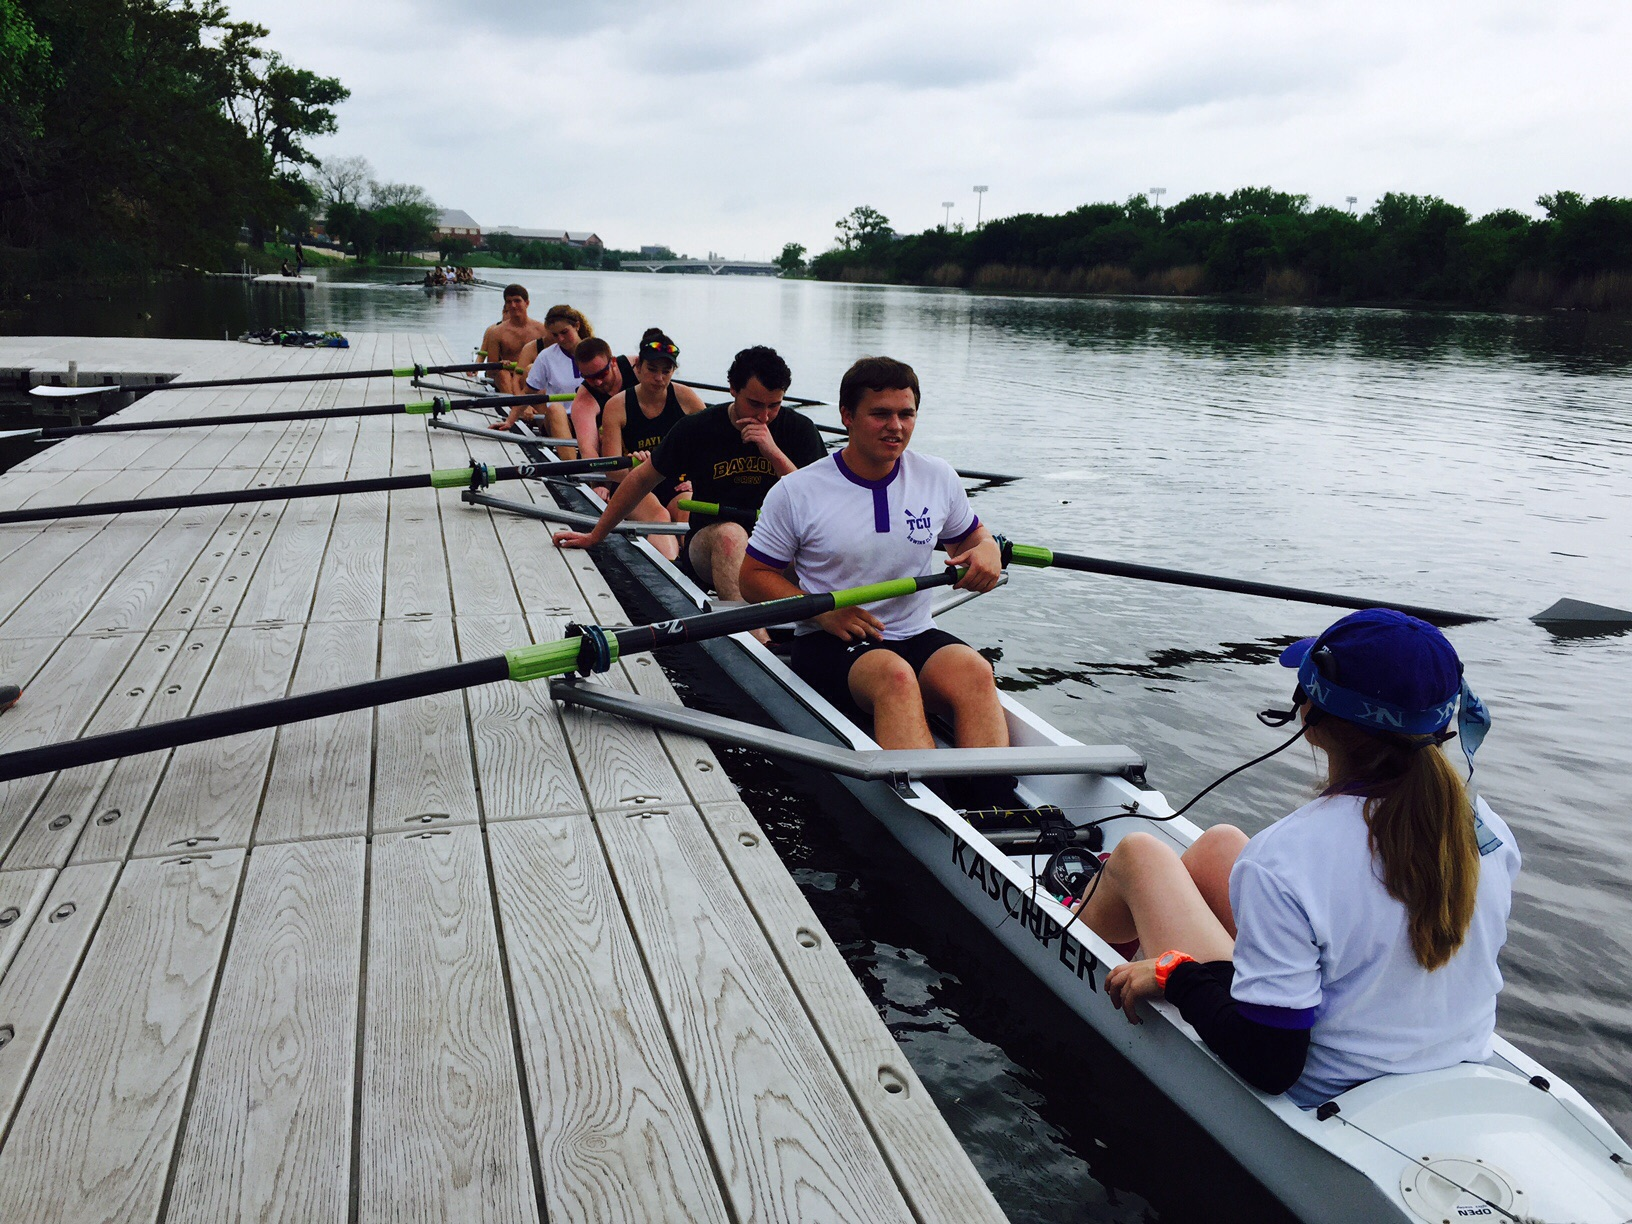 TCU & Baylor Mix crew heading out for an 8+ race